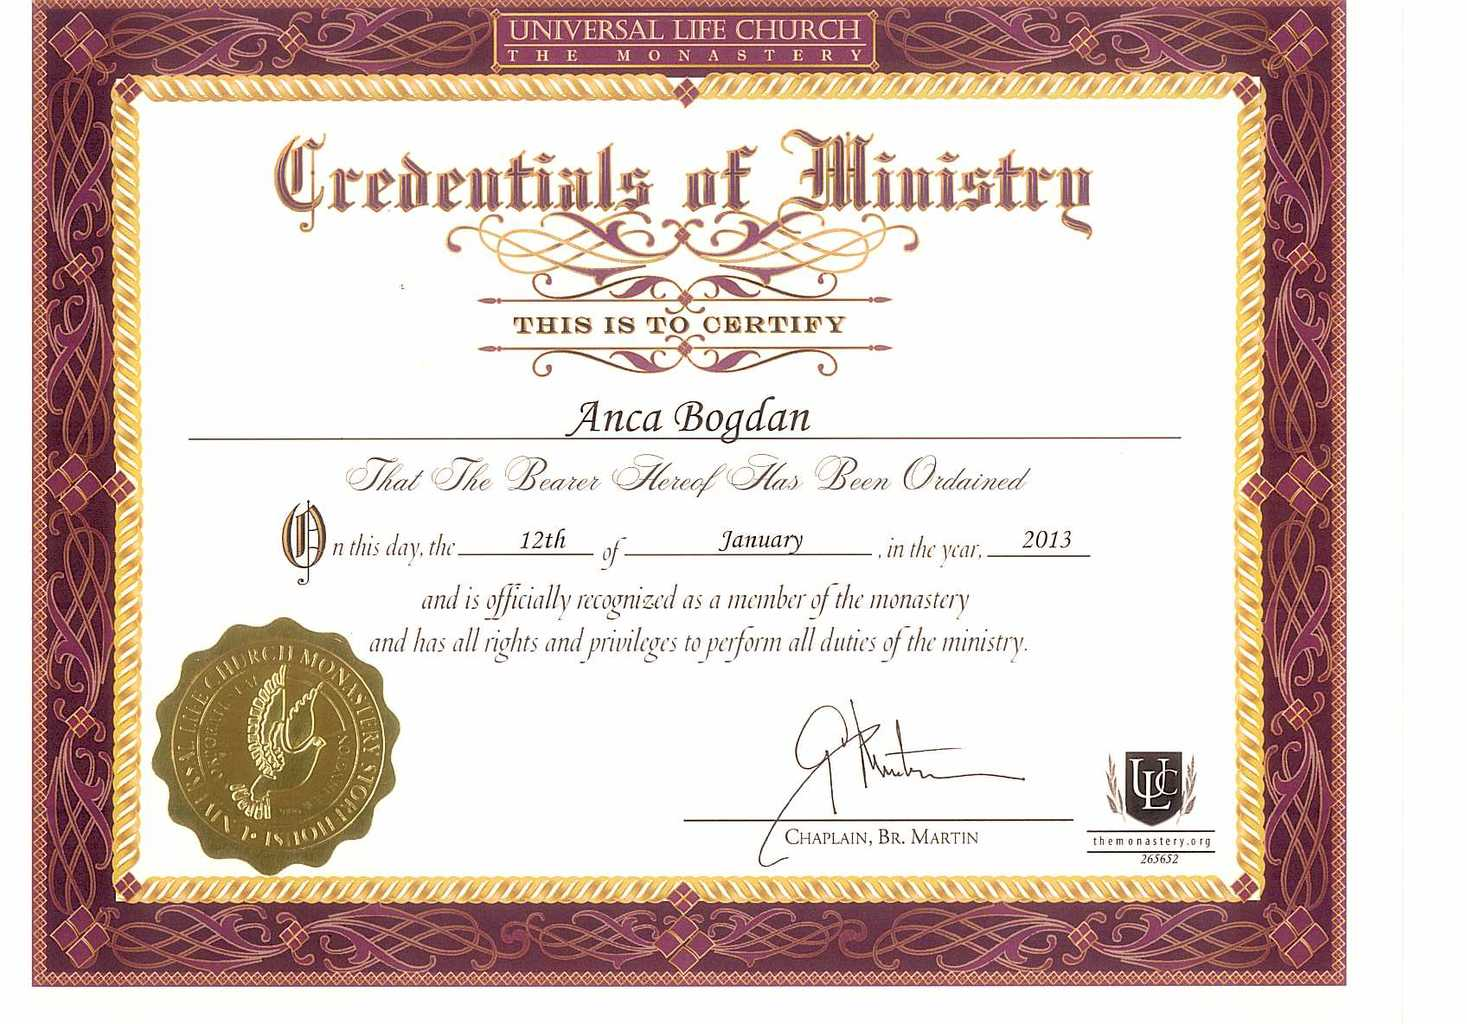 credentials-of-ministry